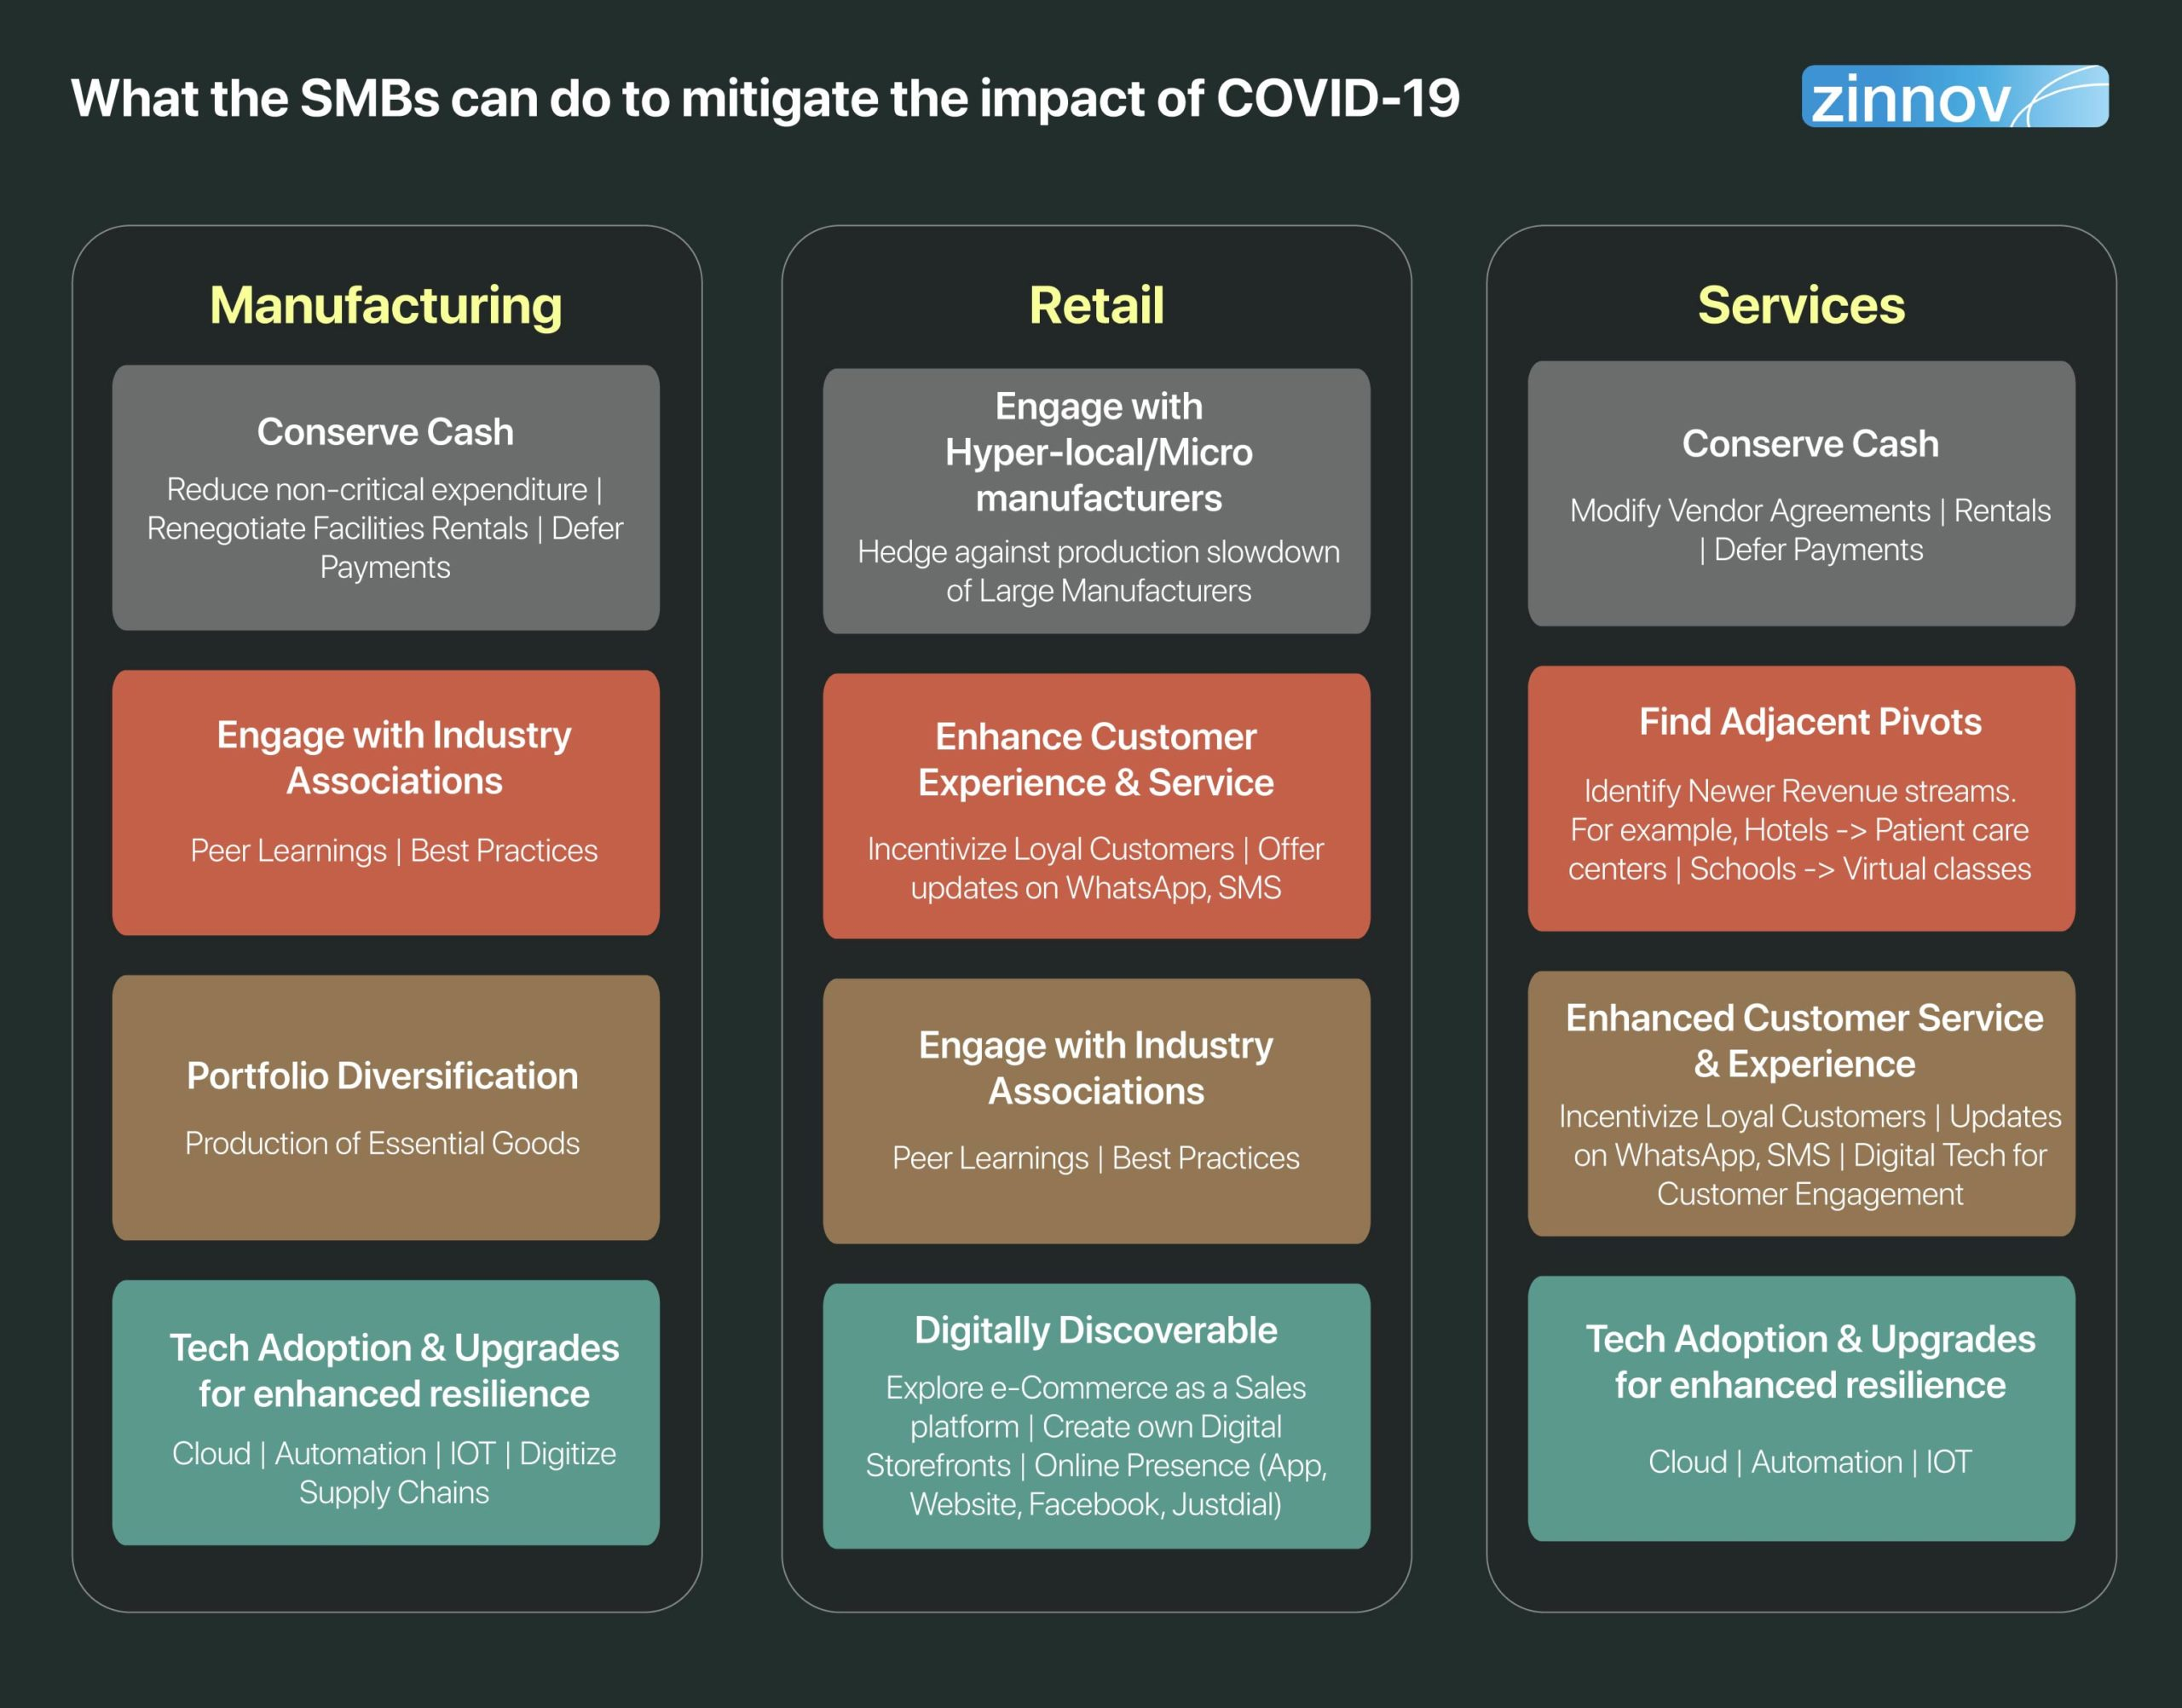 What the SMBs can do to mitigate the impact of COVID-19